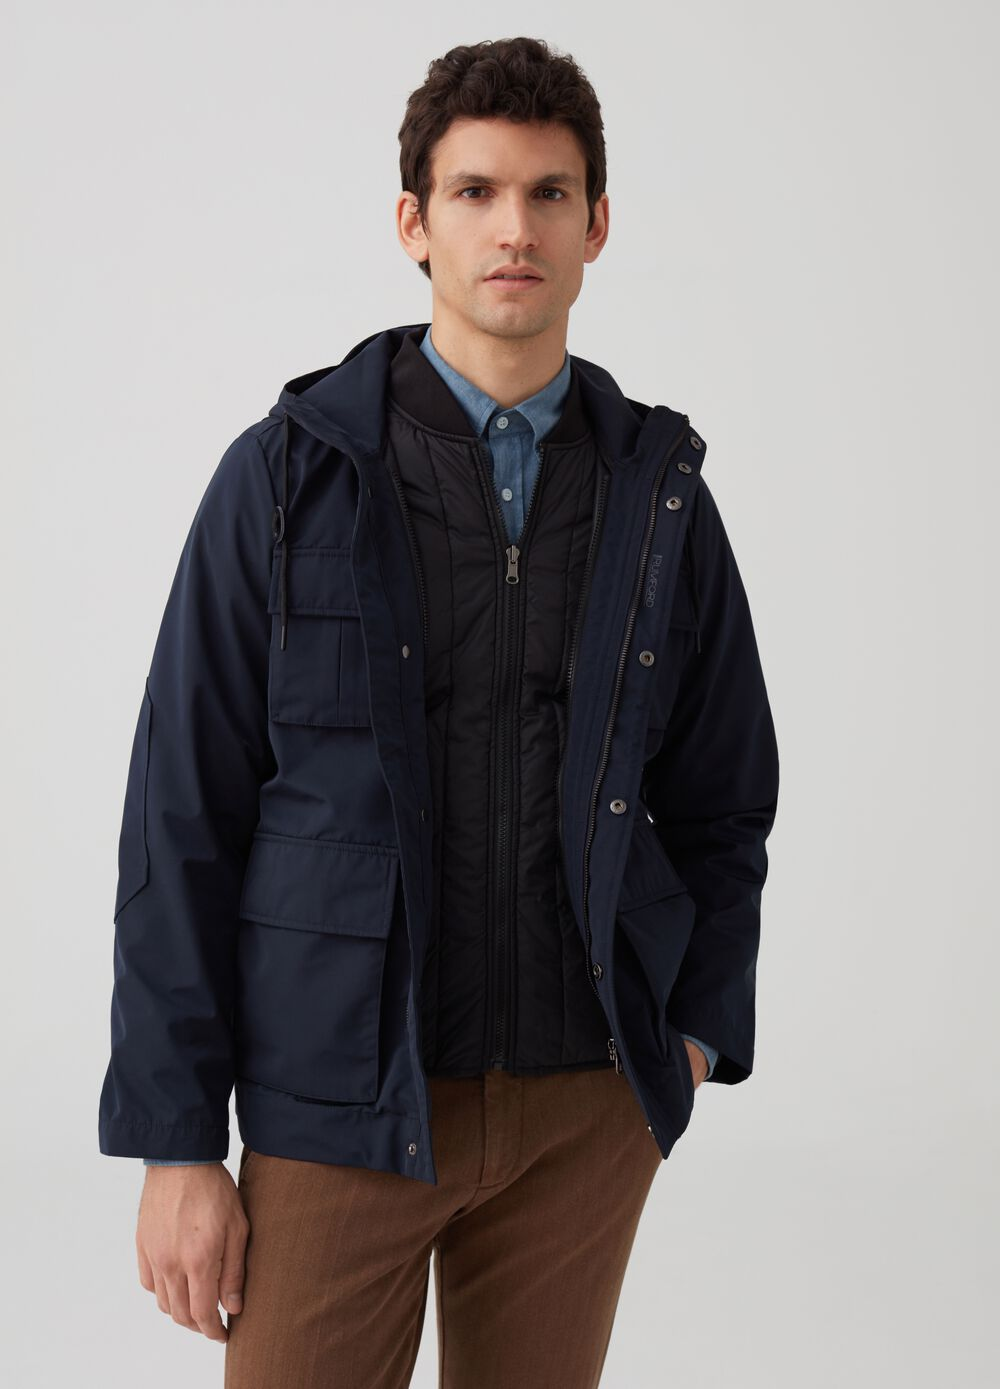 Rumford jacket with hood and pockets